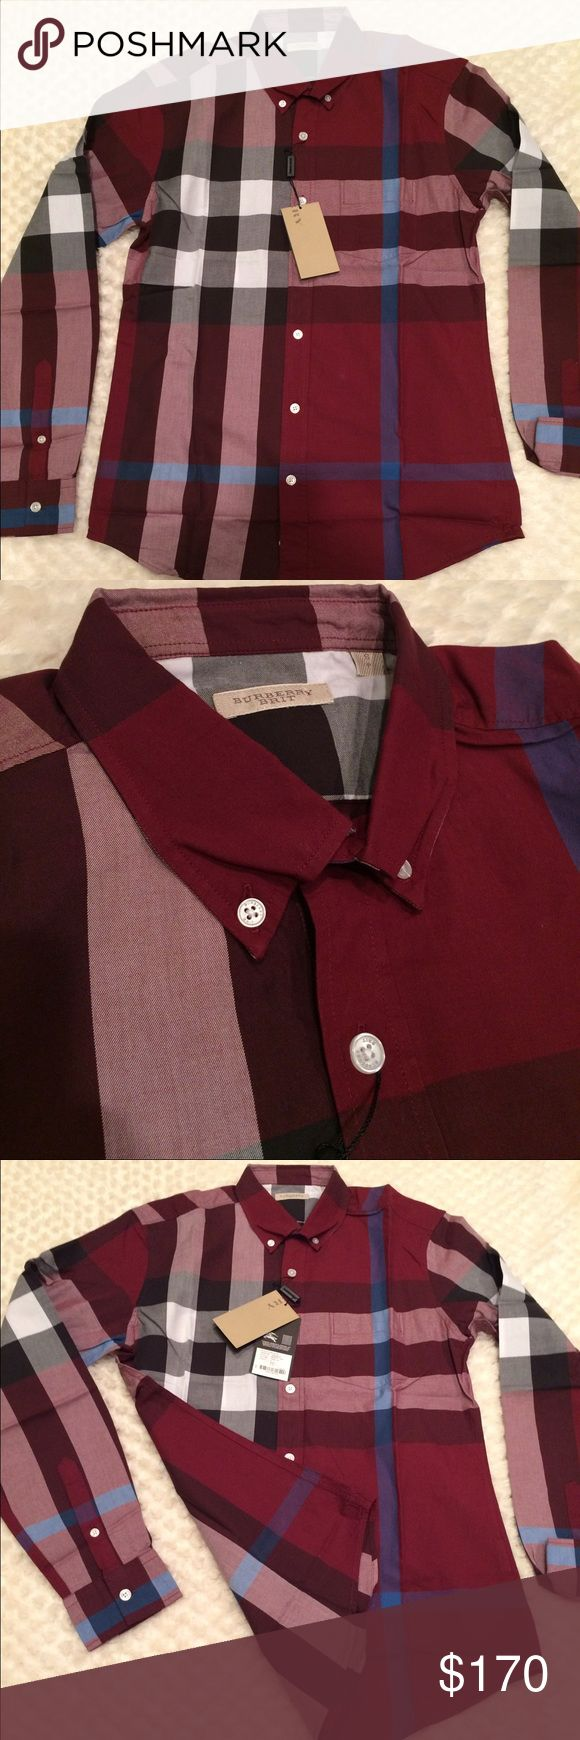 New burberry shirt for men New with tags burberry shirt long sleeves 100% cotton ruby red Burberry Tops Button Down Shirts